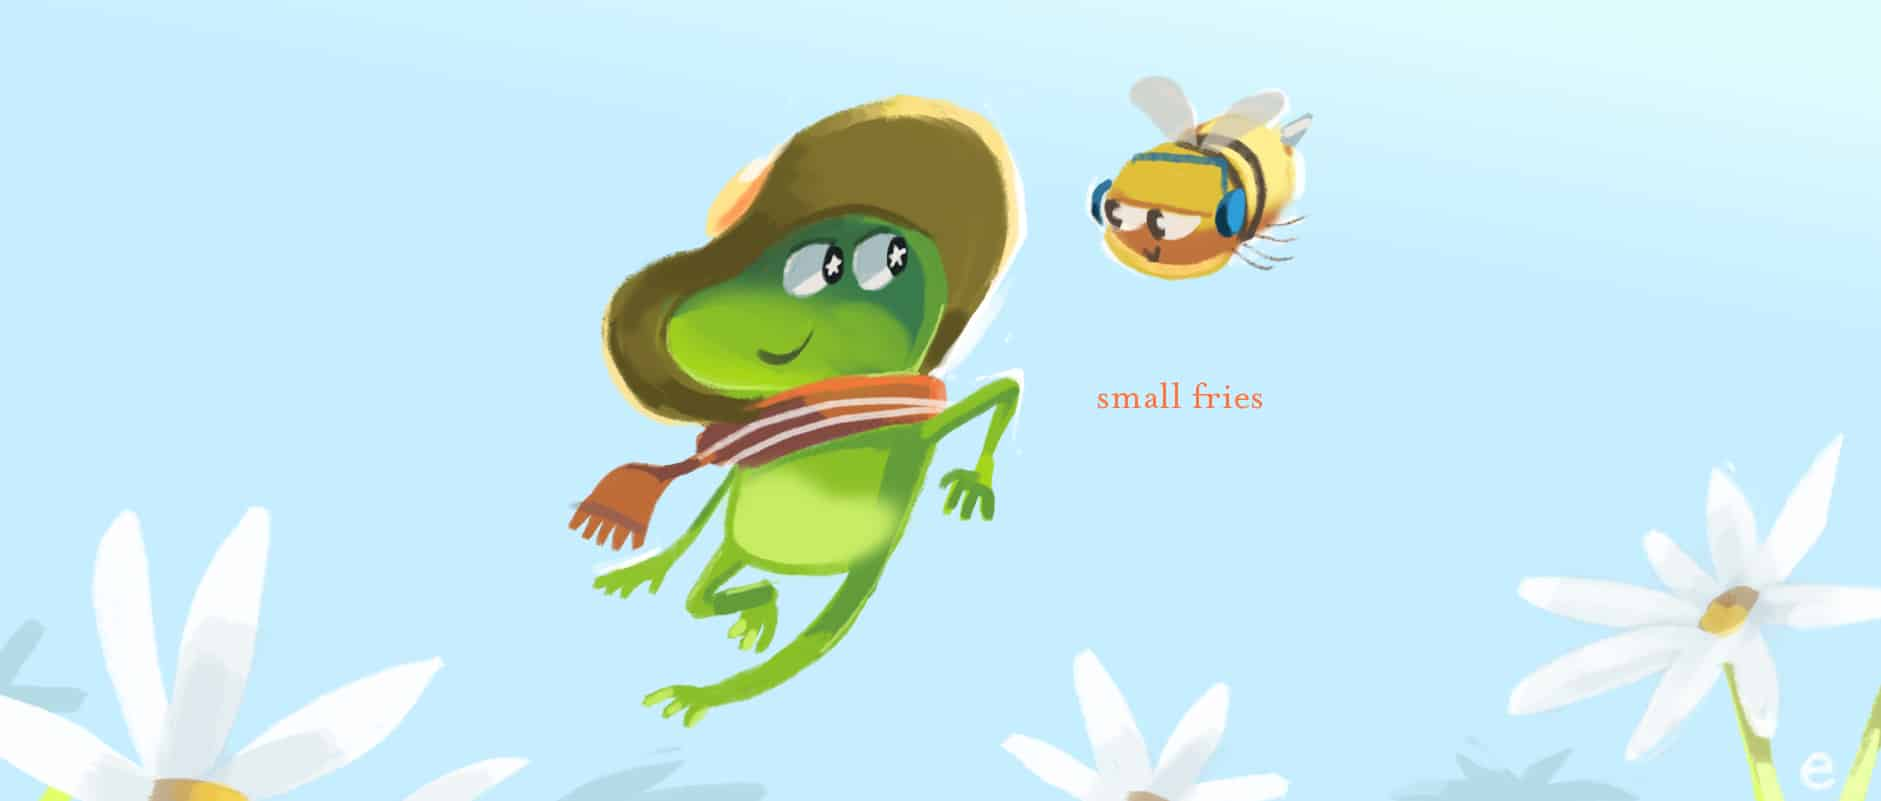 Small Fries by Louie Zong